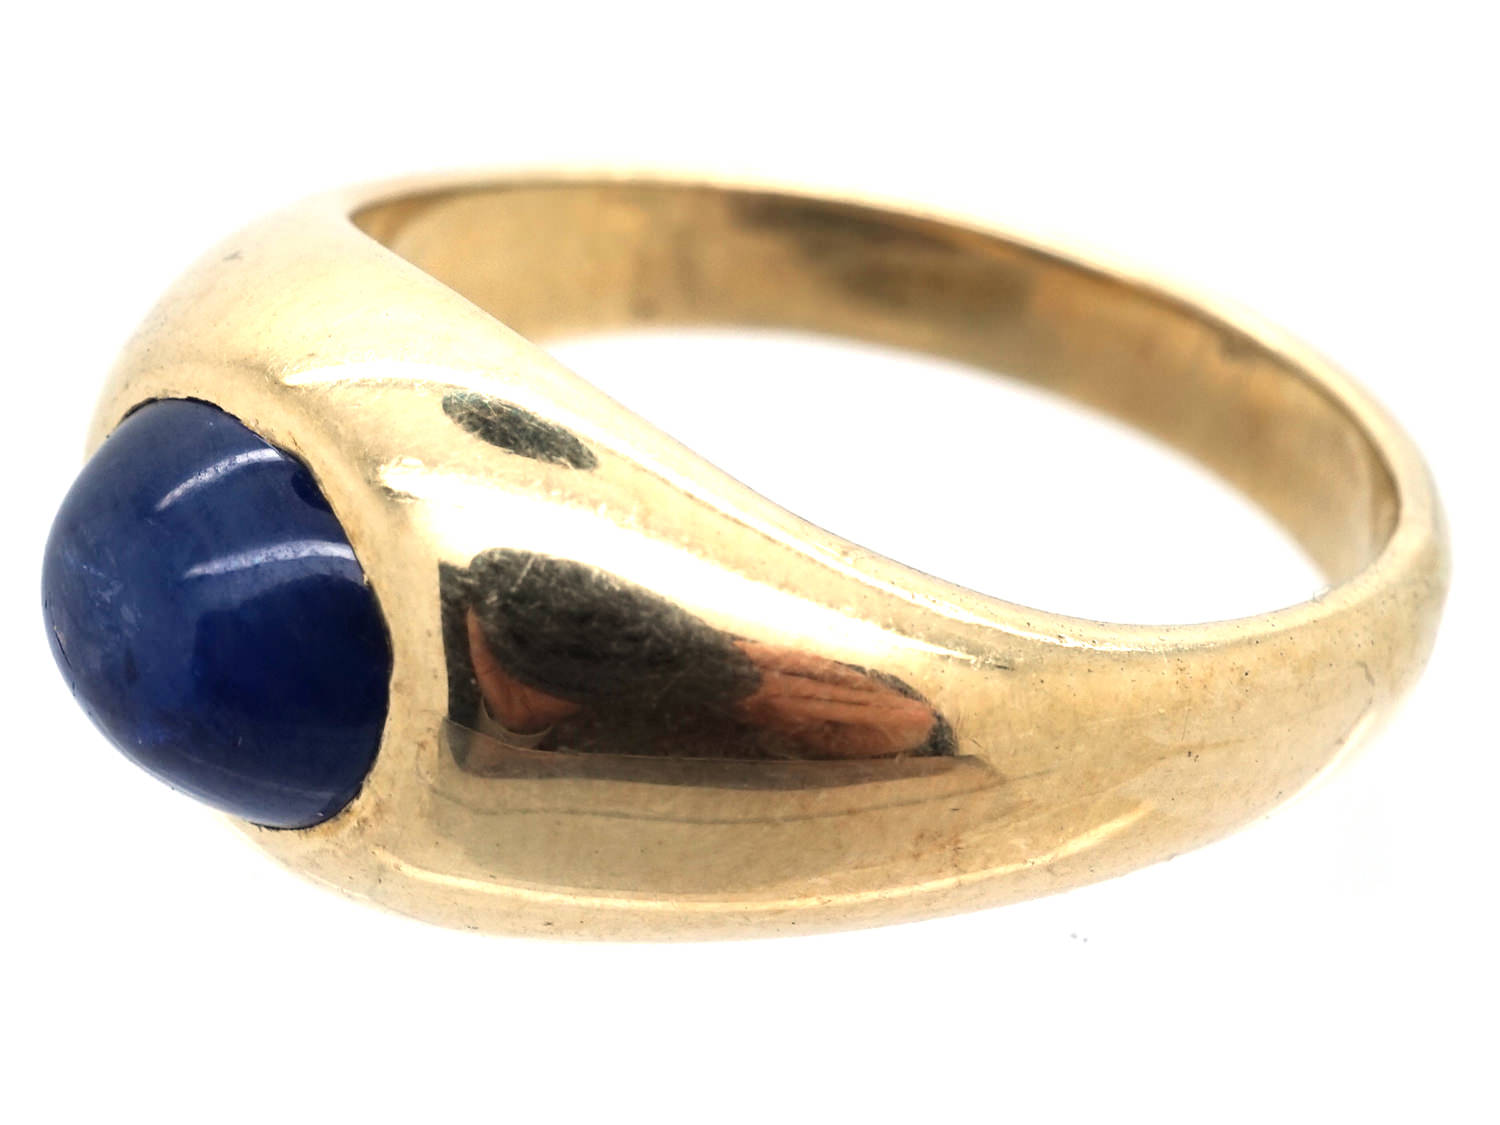 14ct Gold & Cabochon Sapphire Ring